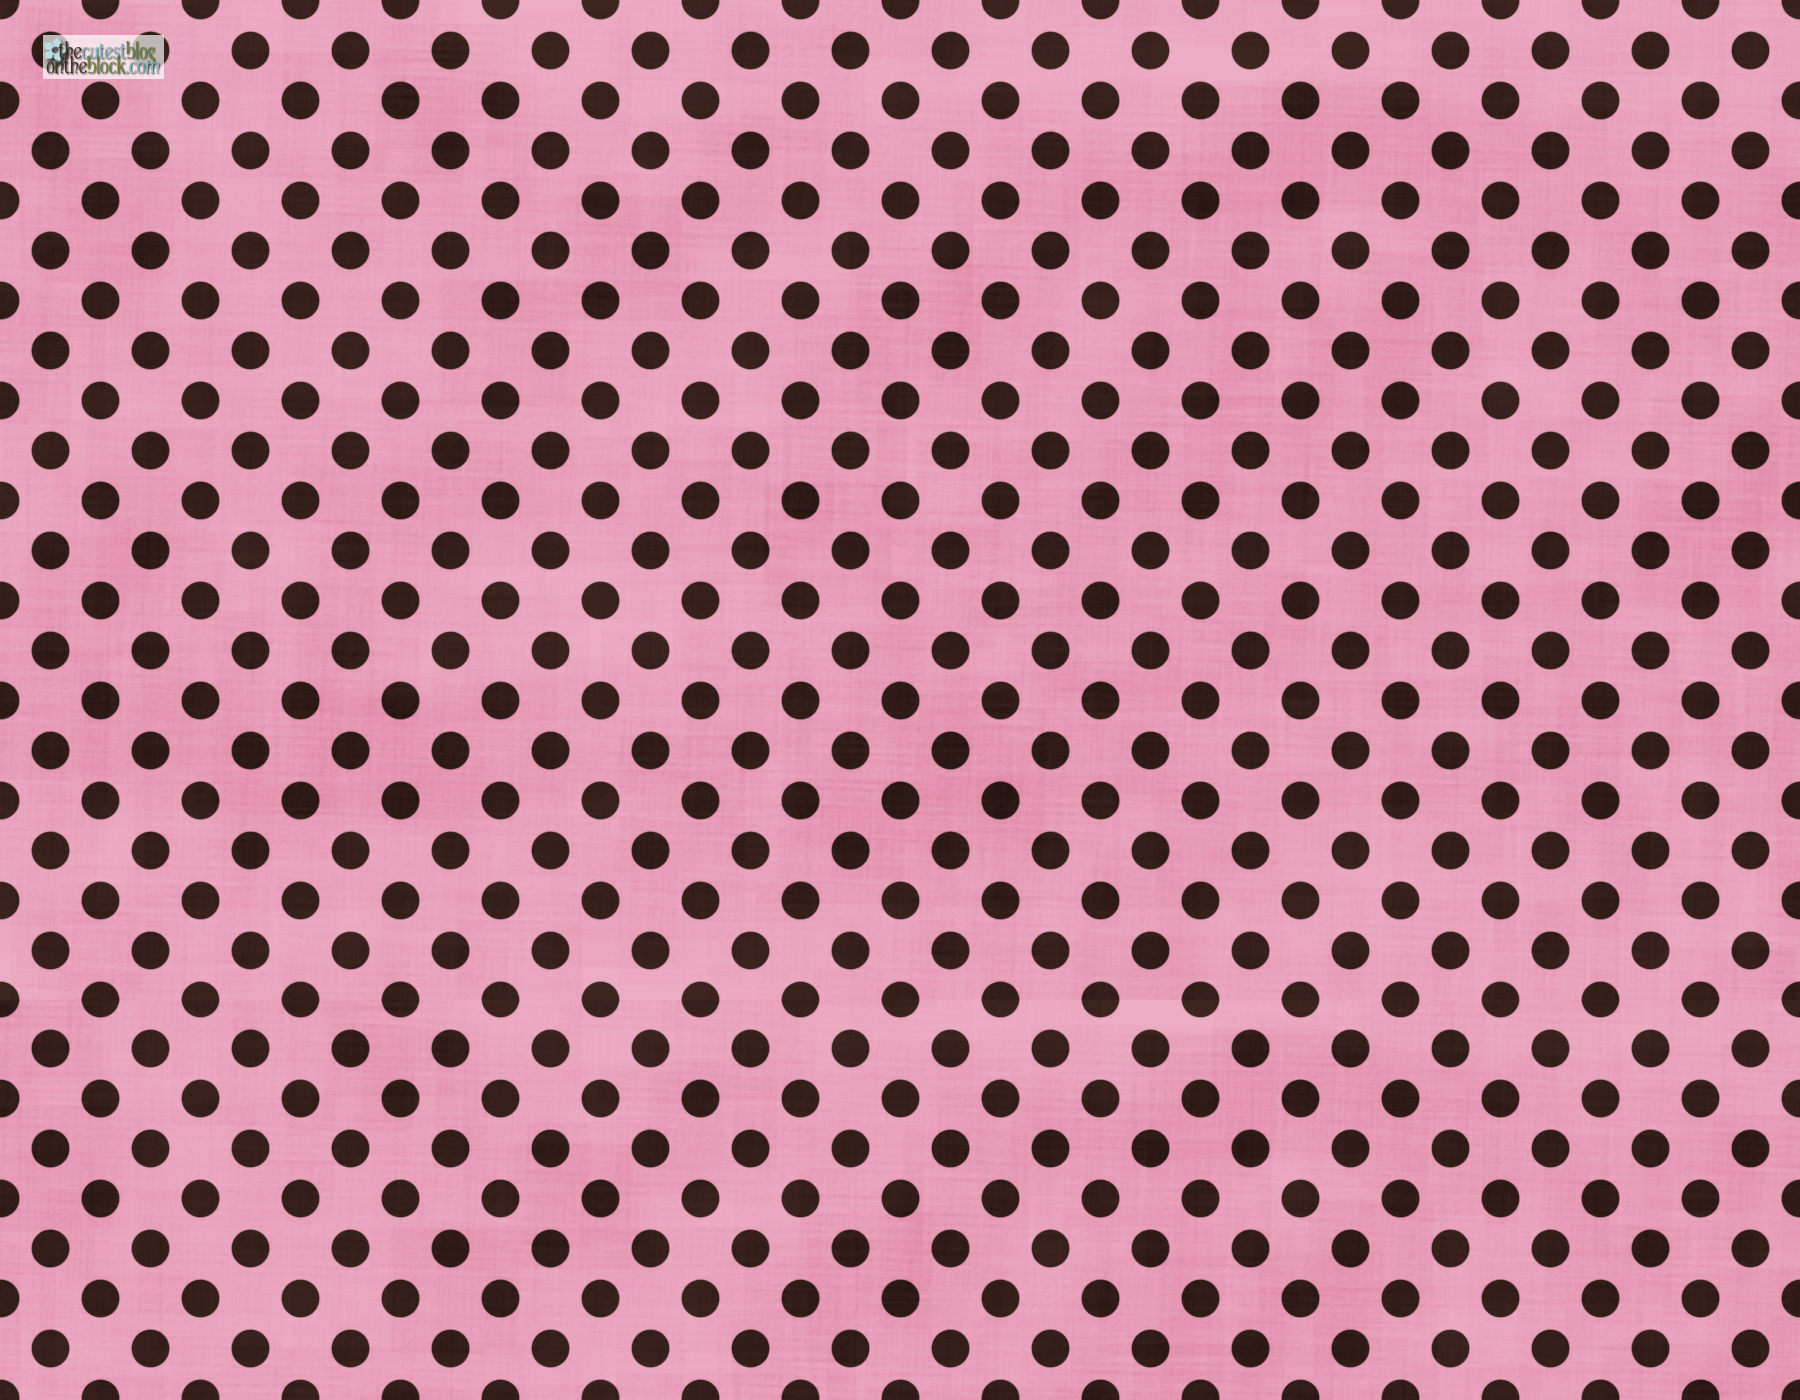 Pink | Twitter Backgrounds | The Cutest Blog On The Block